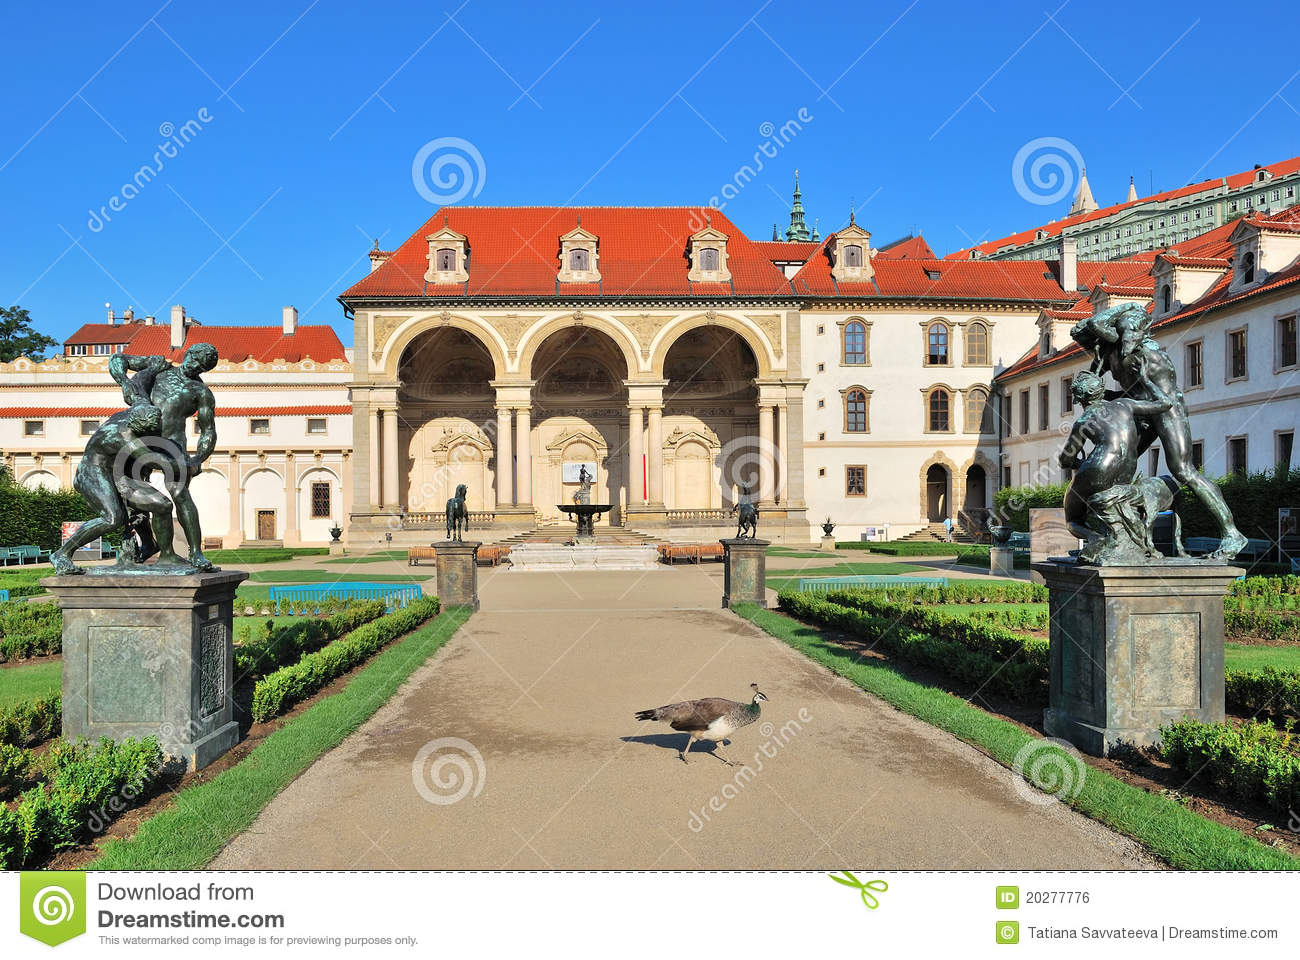 Prague palais de wallenstein image libre de droits for Jardin wallenstein prague